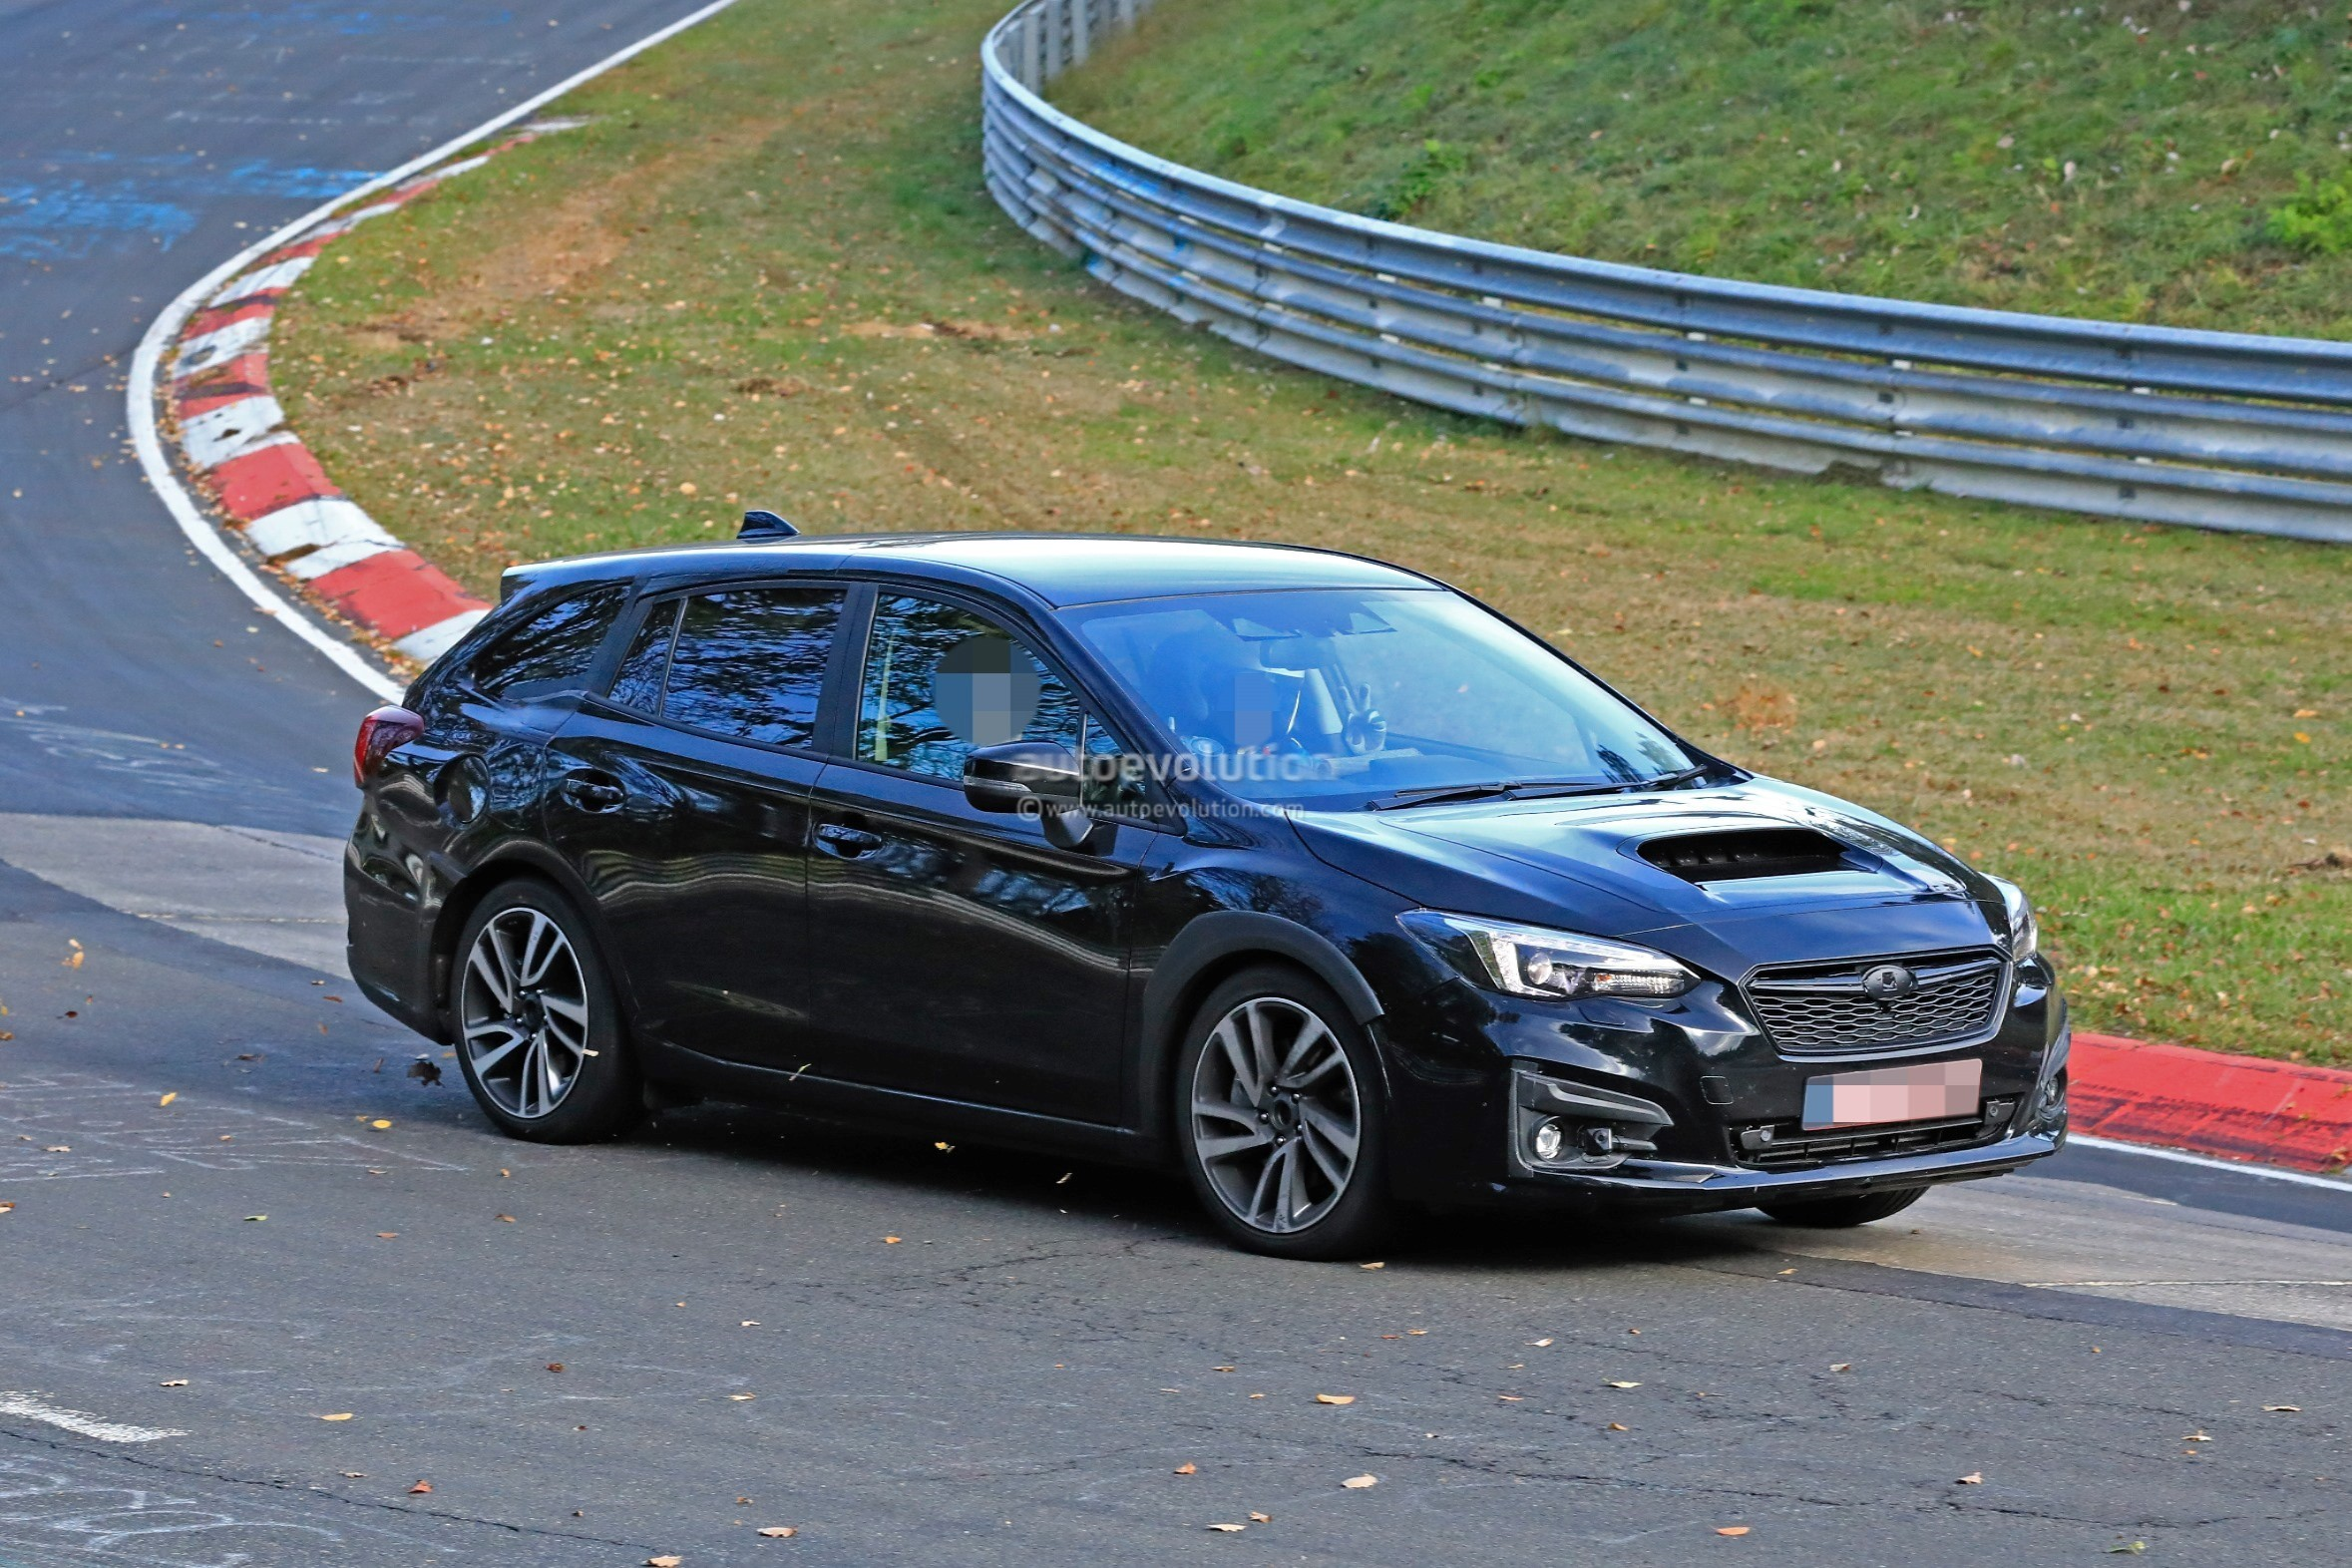 2020 Subaru Levorg Chassis Mule Spied Lapping The ...